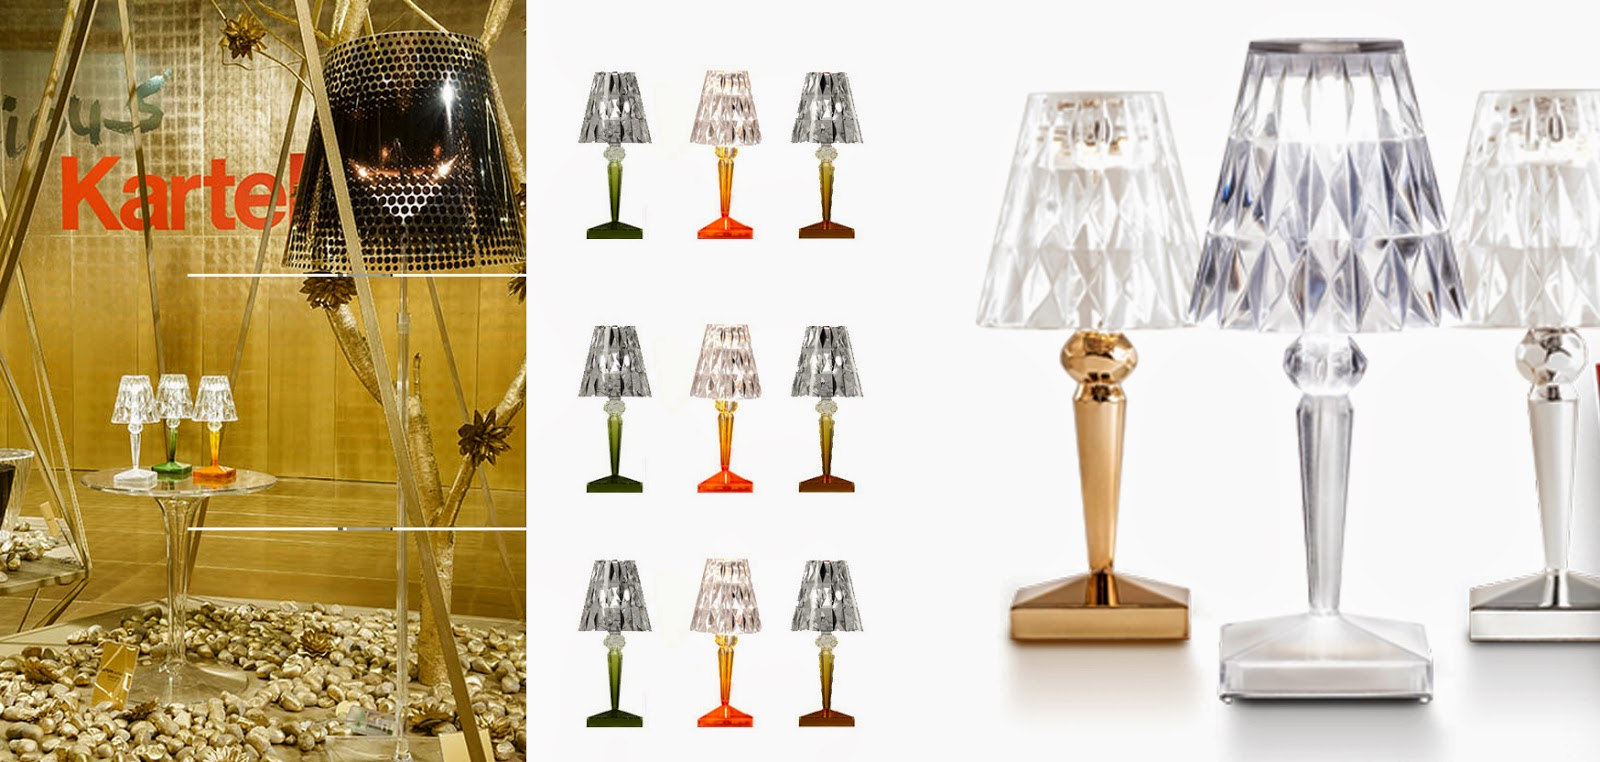 Fedegredesign precious kartell collection for Piantana kartell